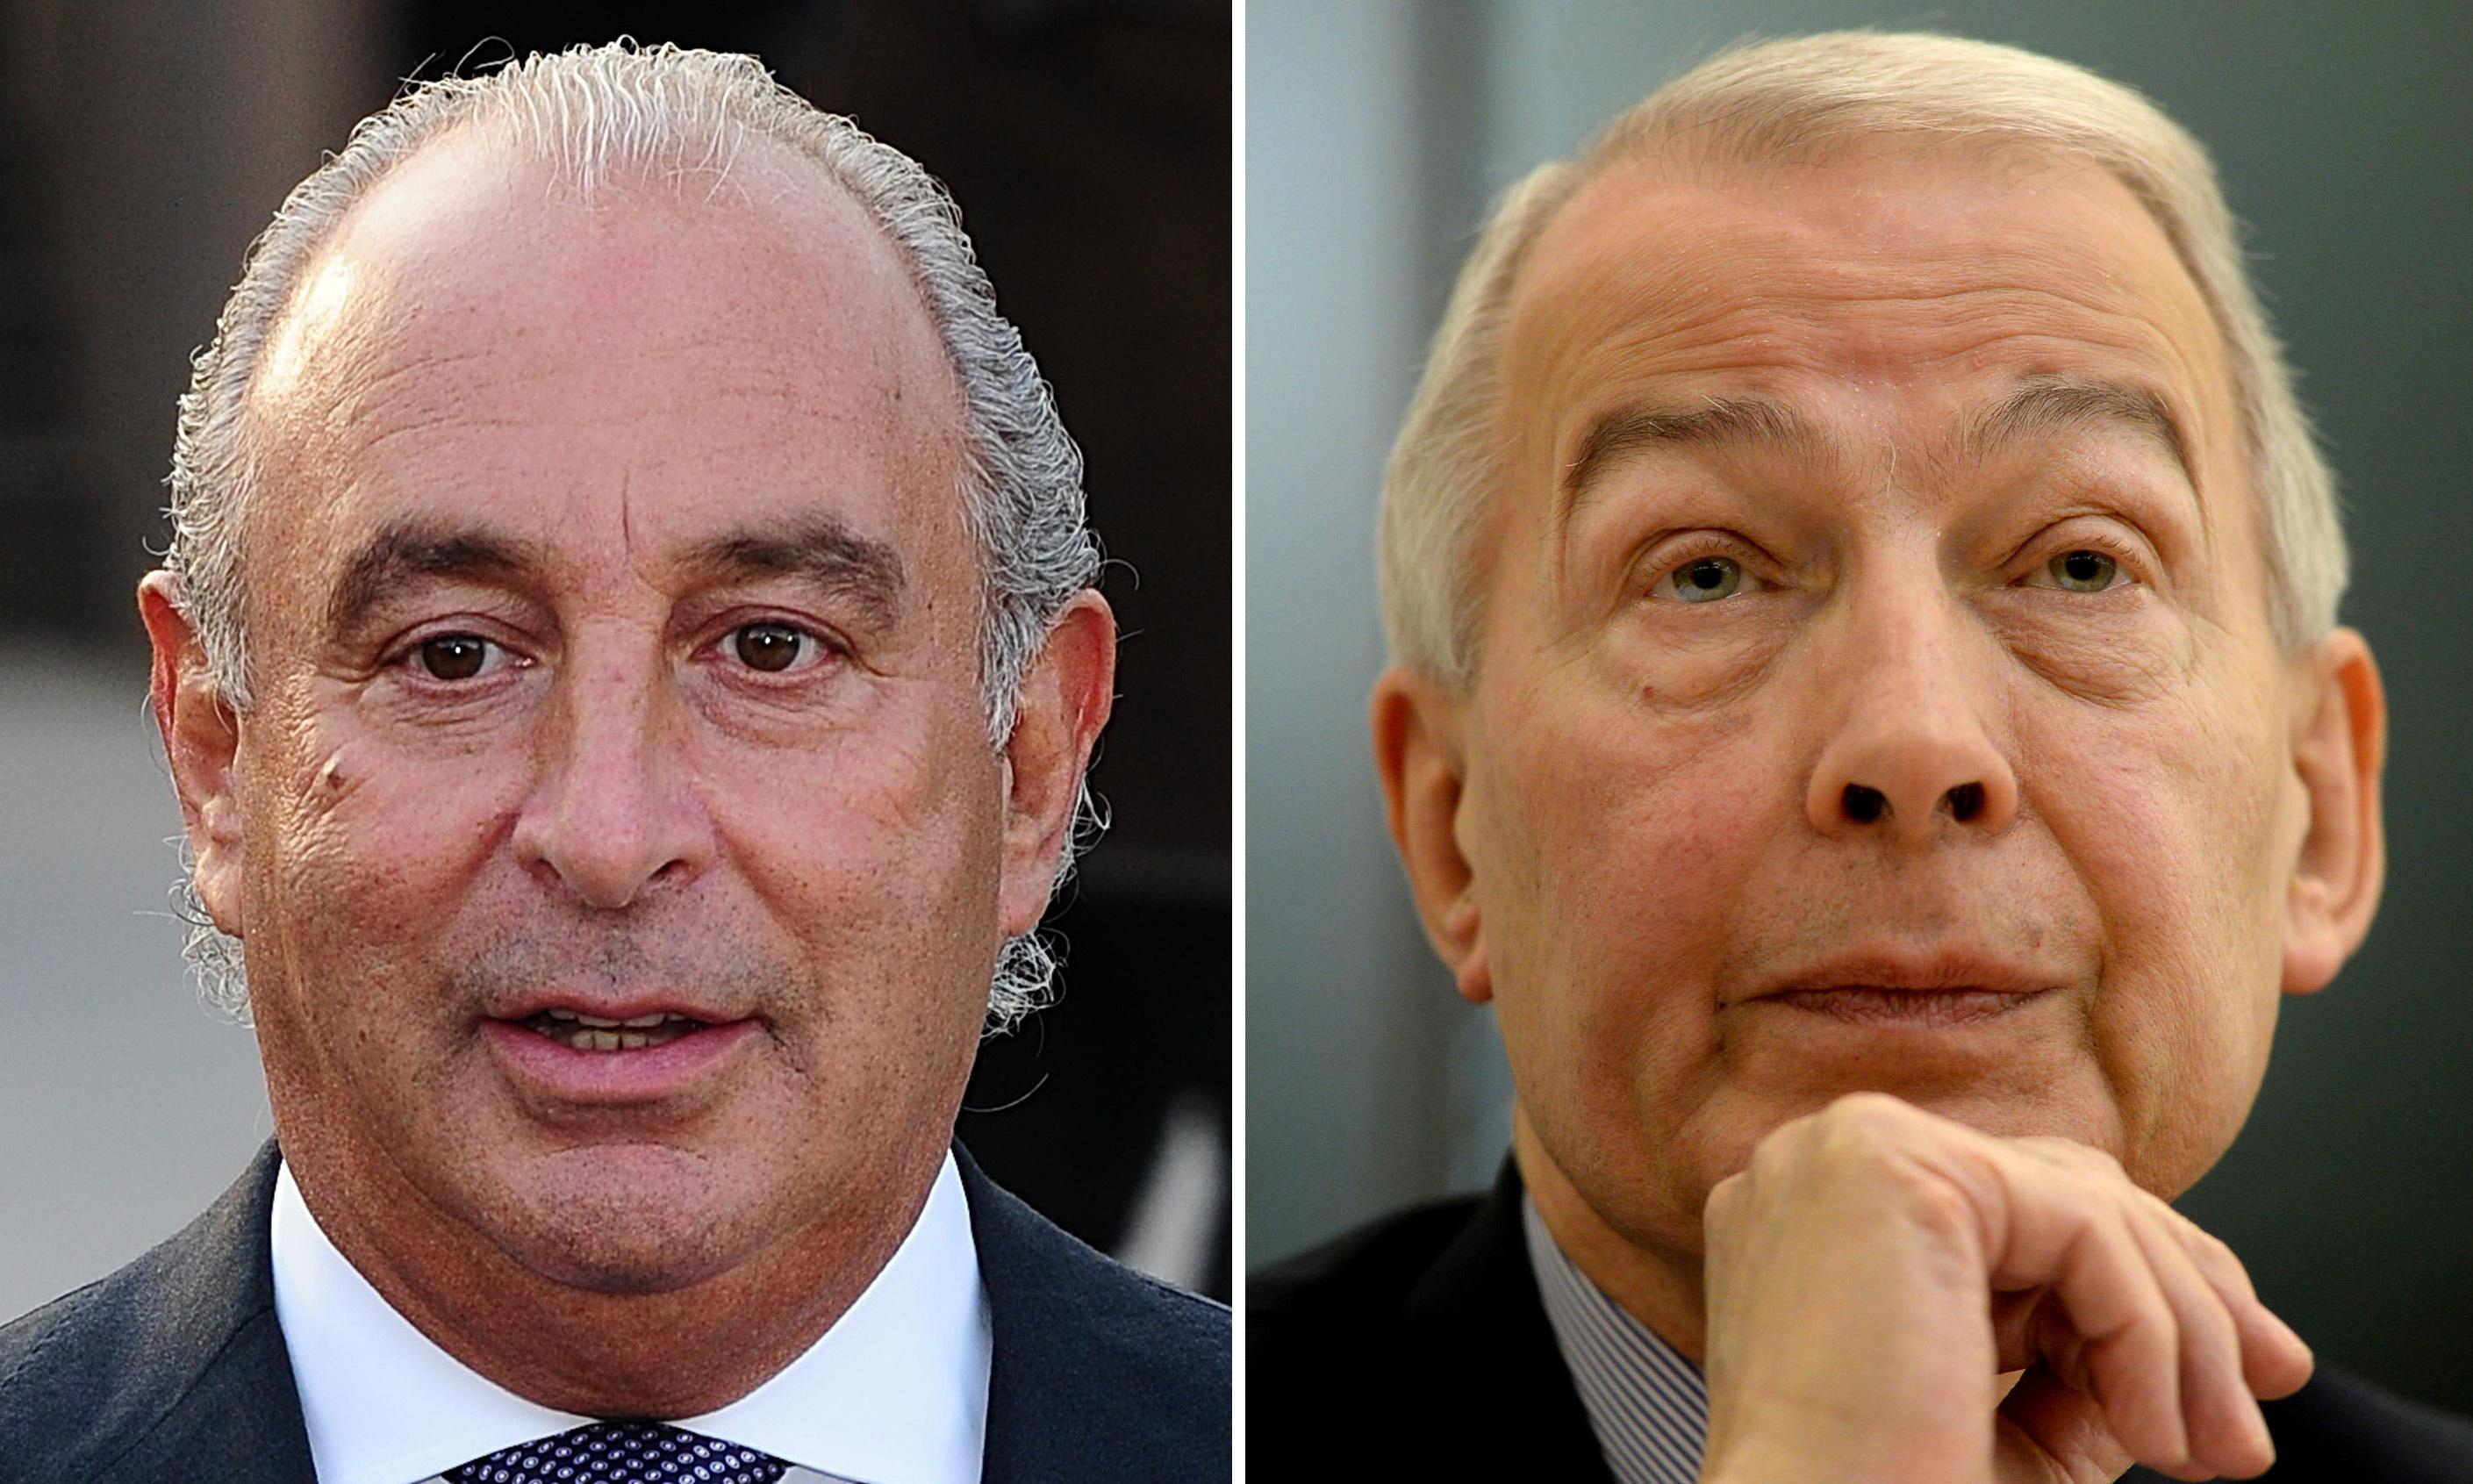 Frank Field resumes fight with Philip Green amid Arcadia pension row